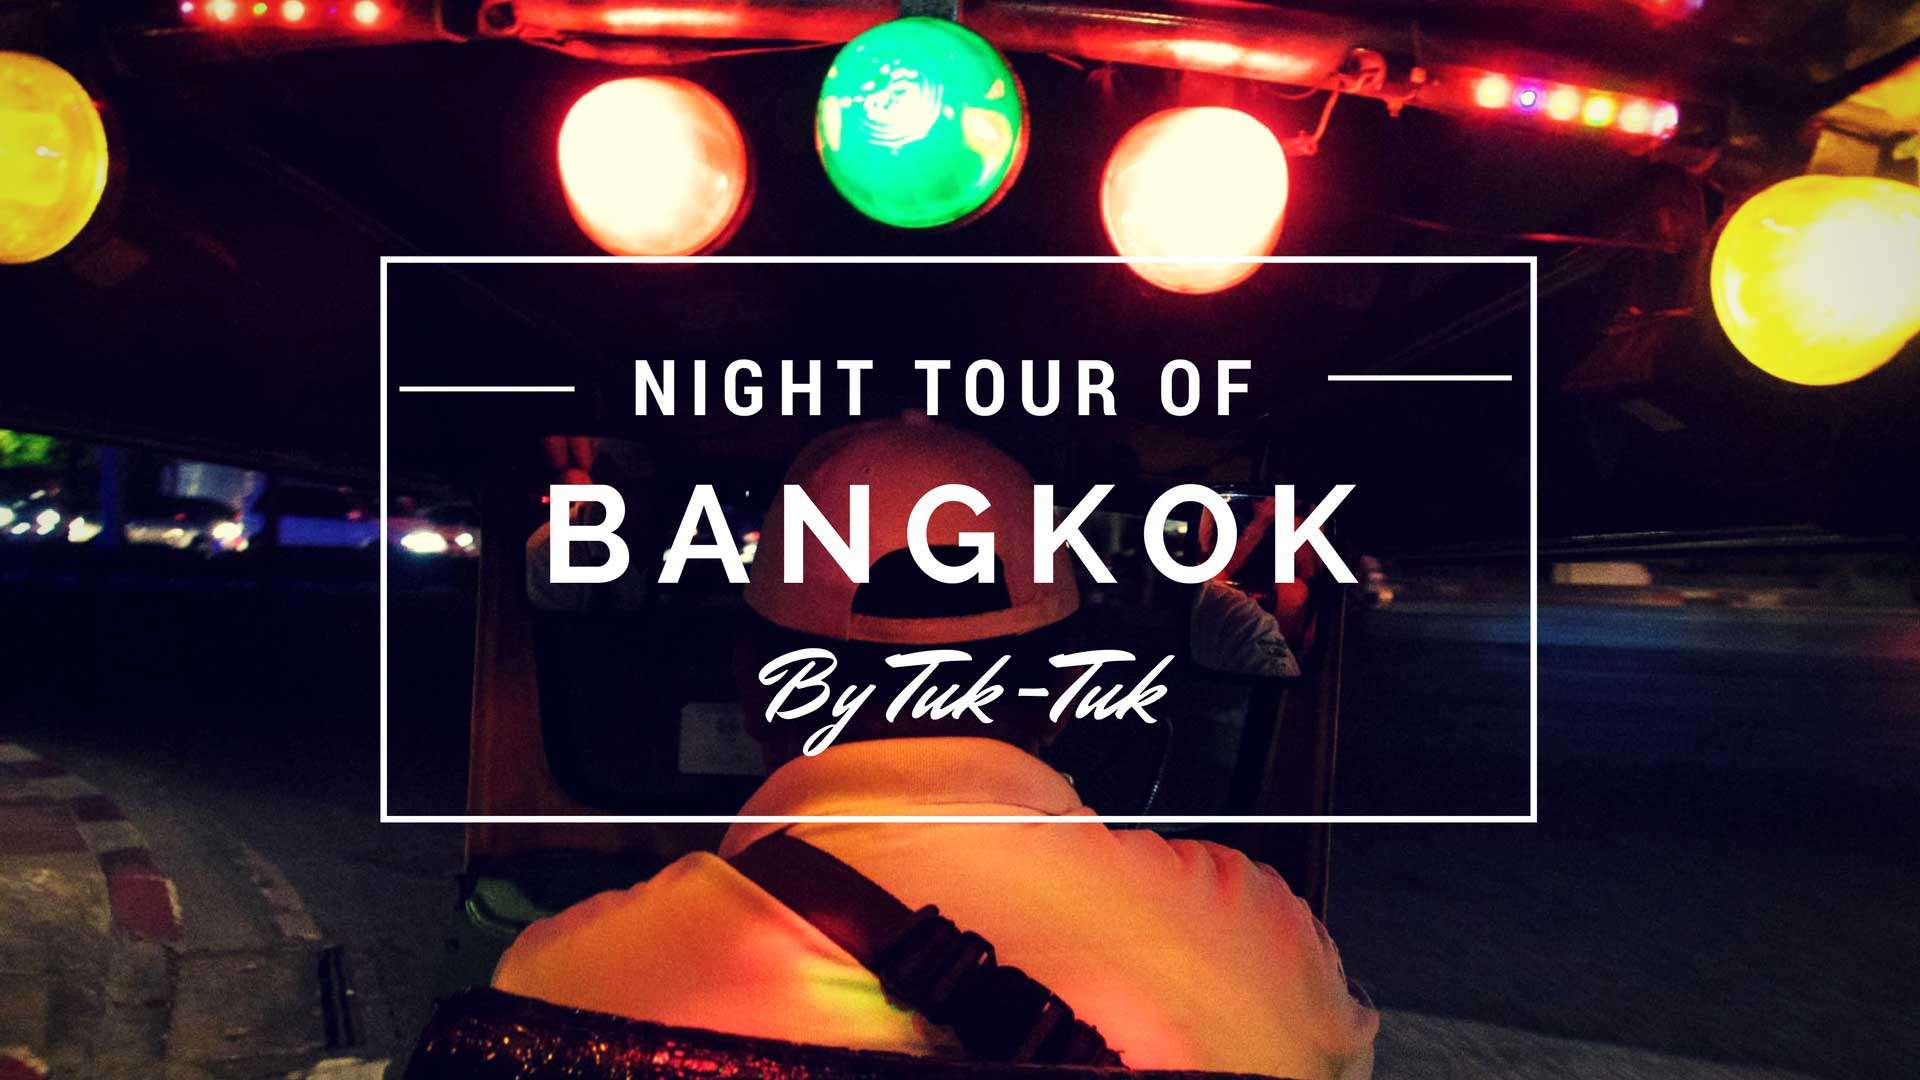 Night Tour of Bangkok by Tuk-Tuk!